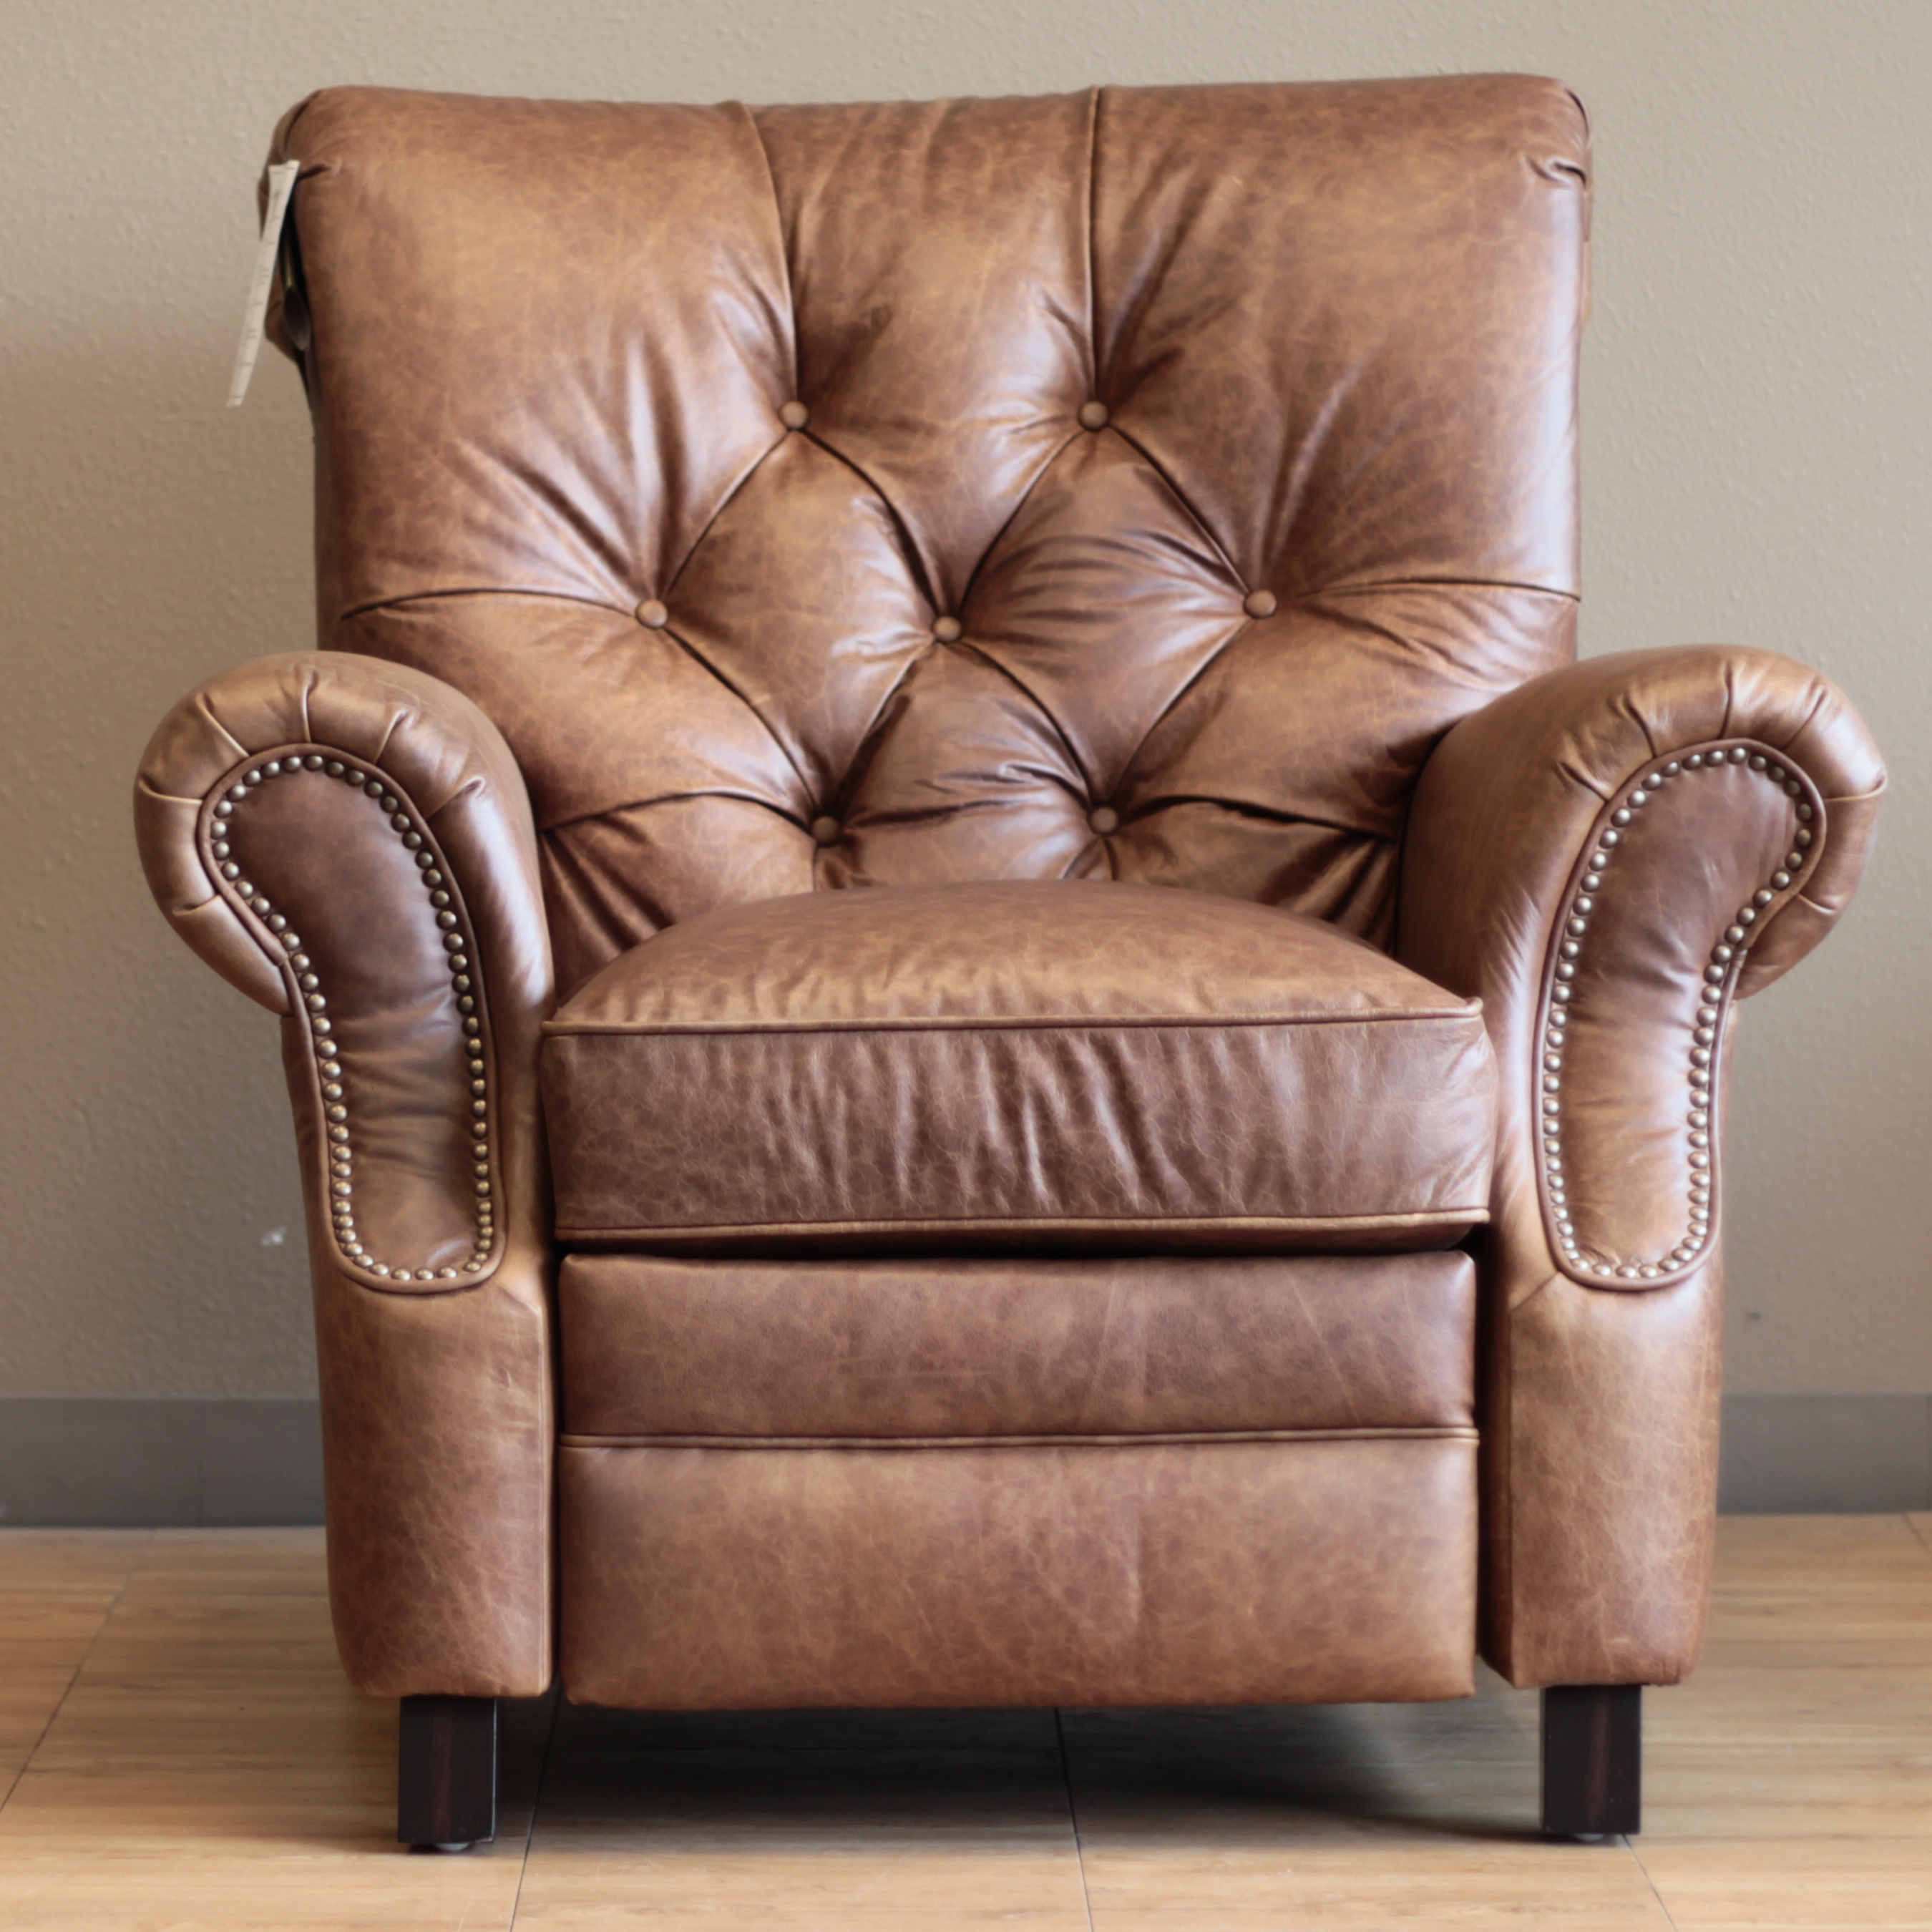 Barcalounger Phoenix Ii Leather Recliner Chair